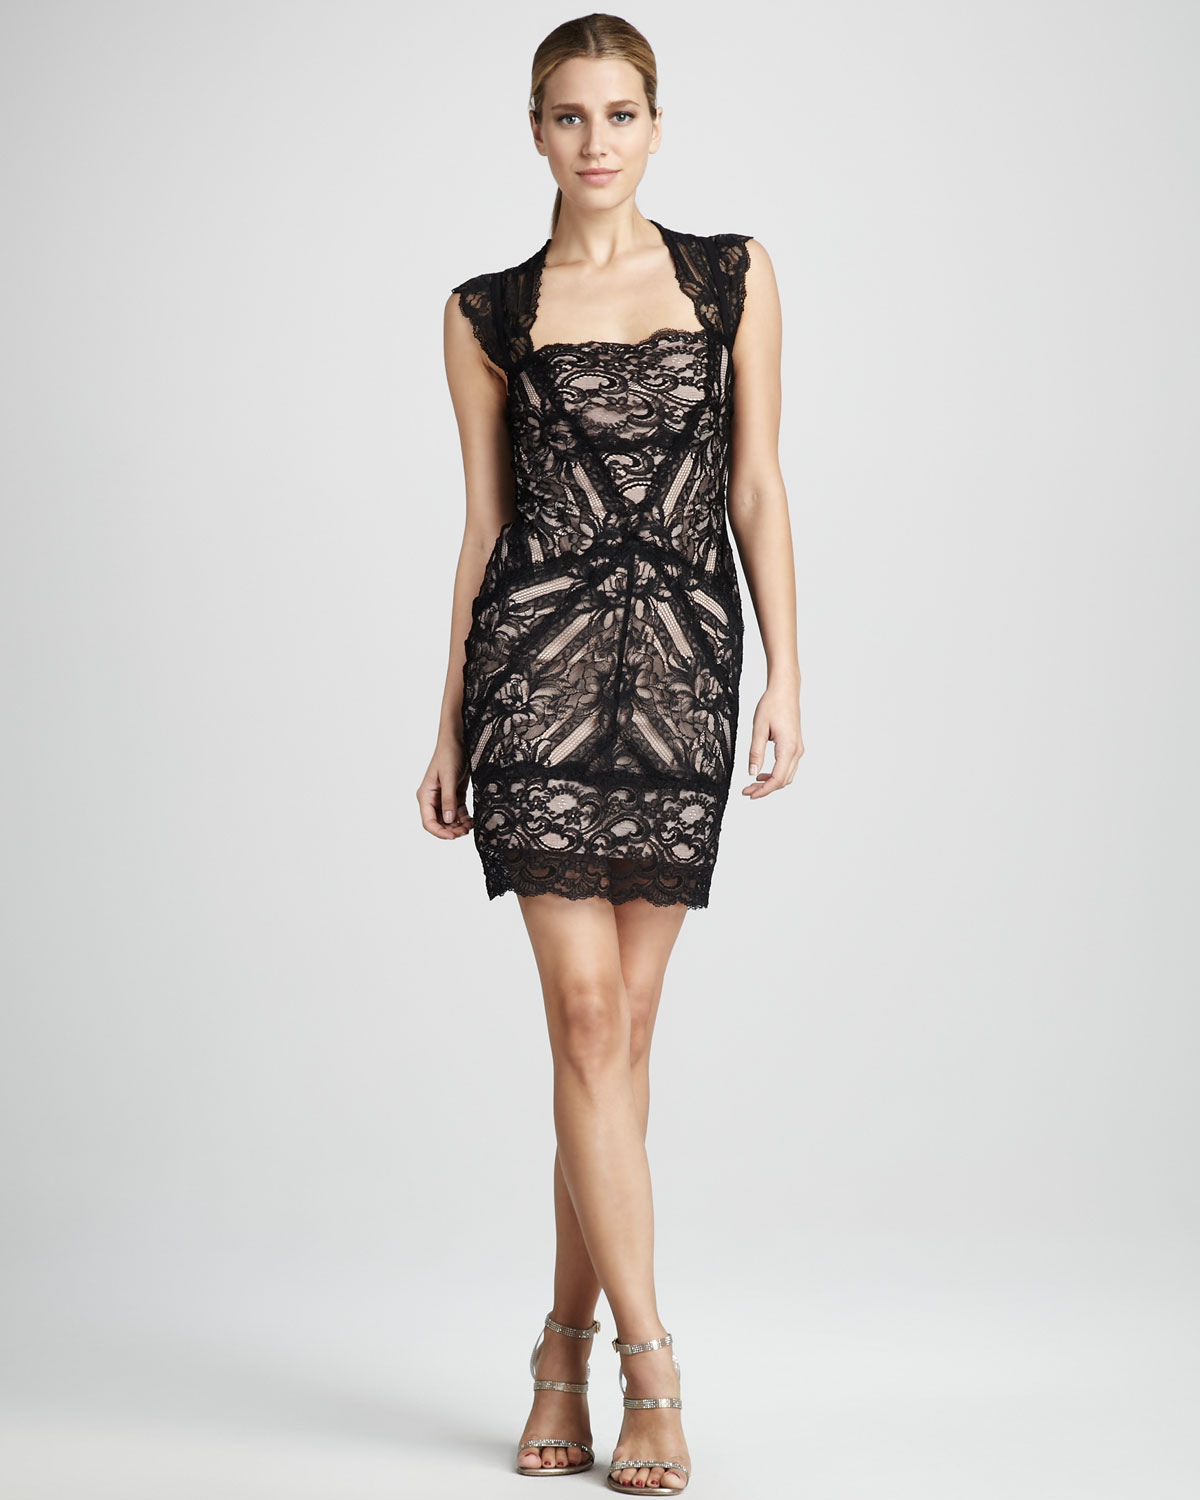 Nicole miller Stretch Lace Cocktail Dress in Metallic | Lyst